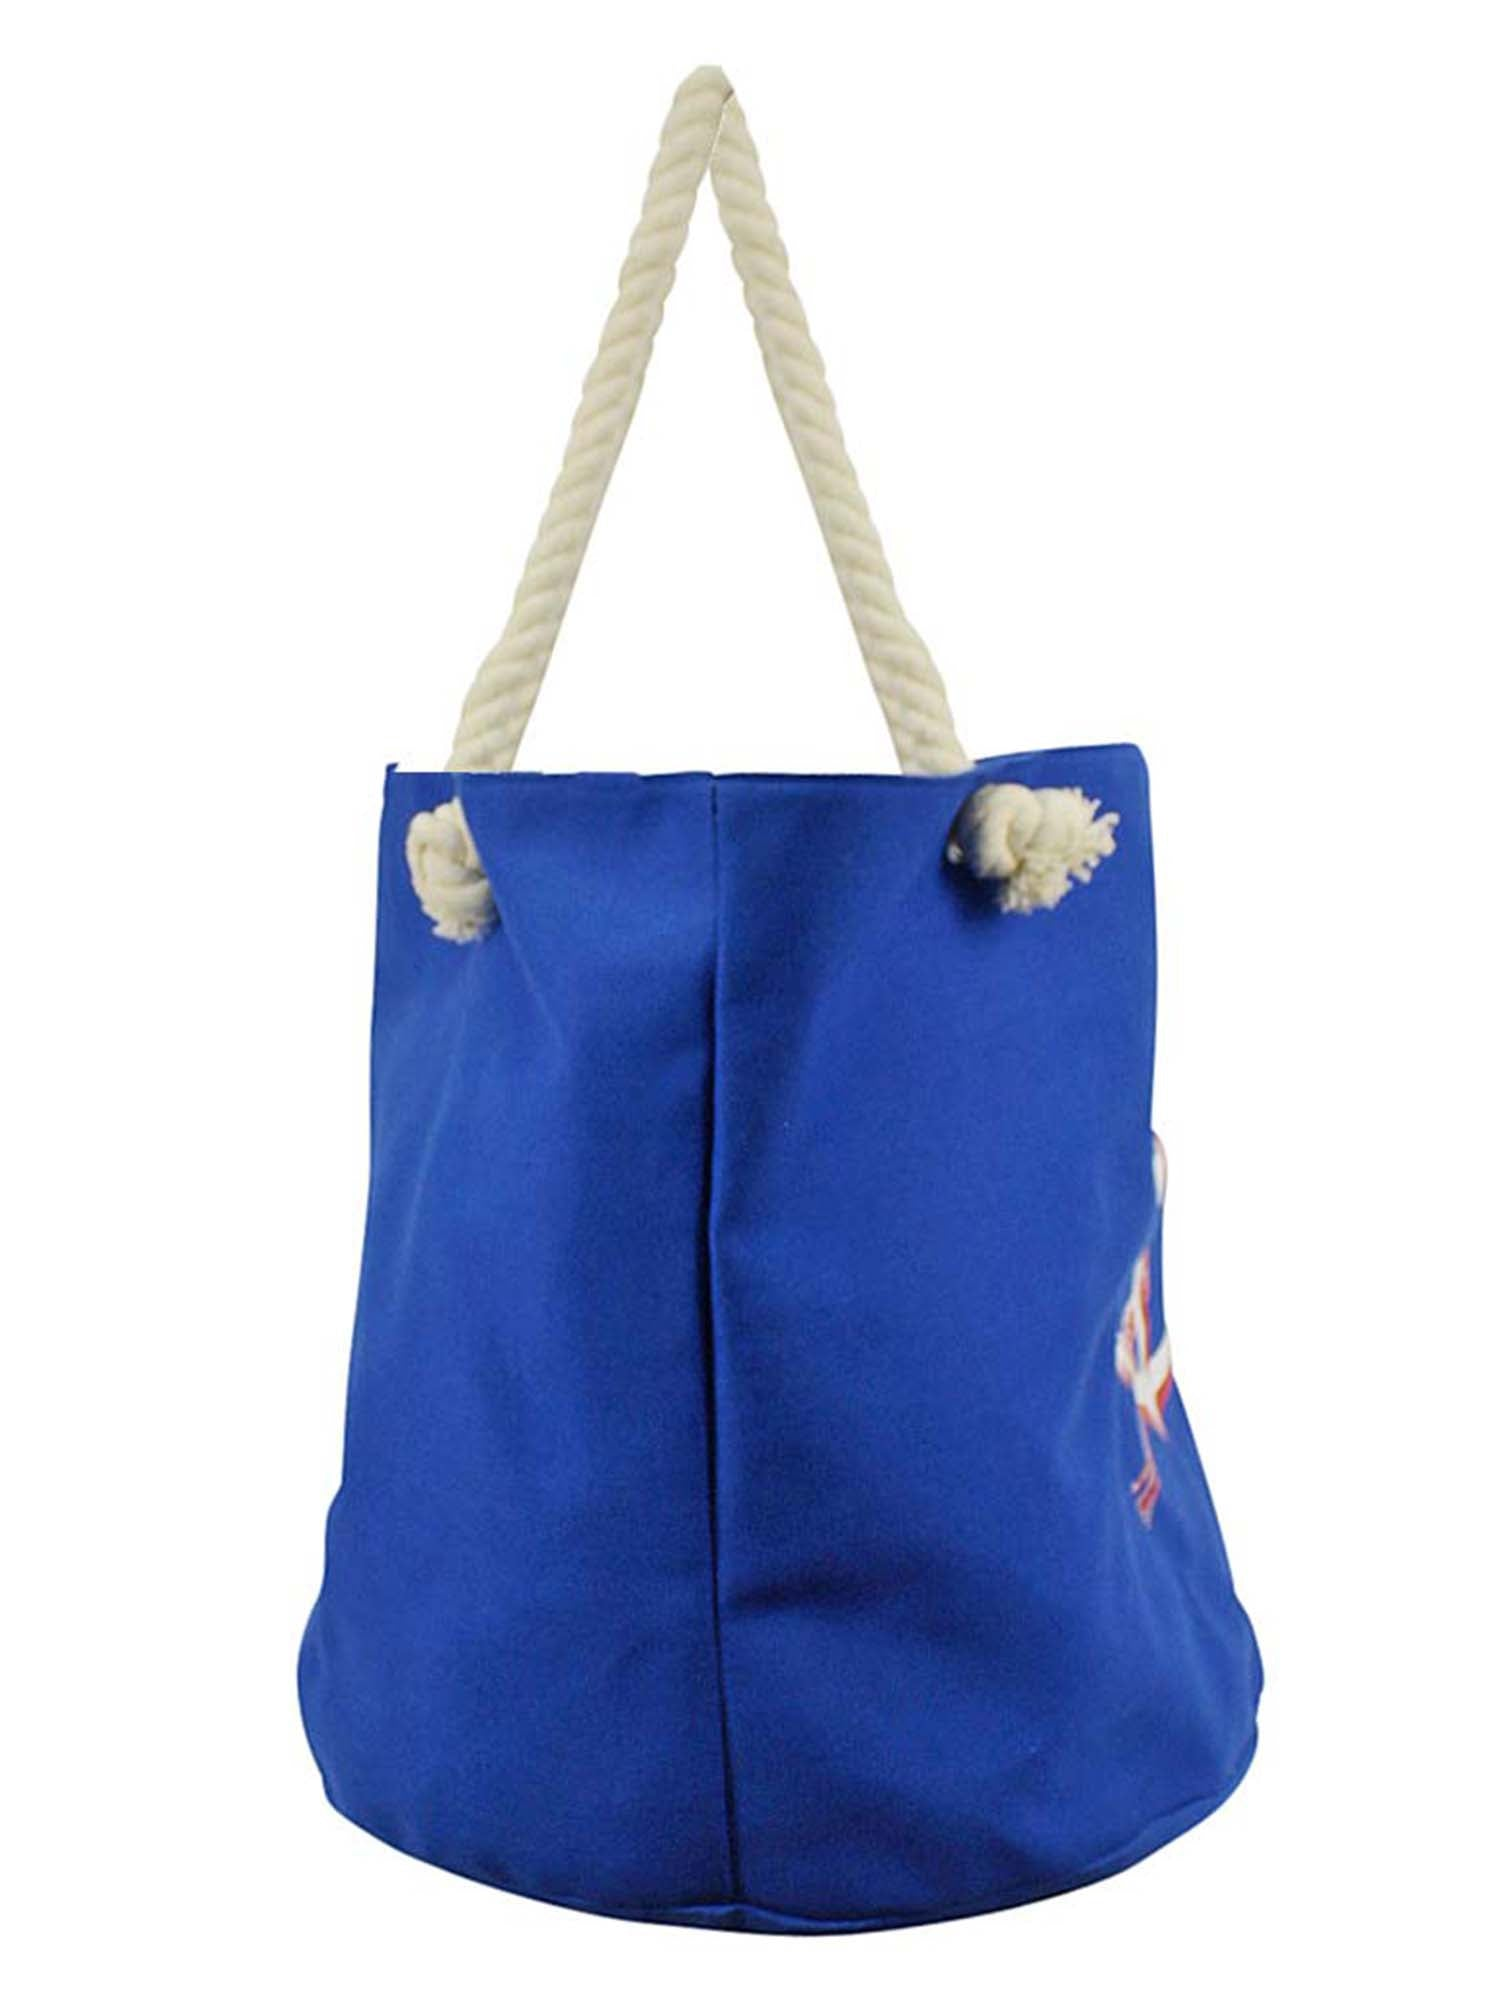 Blue Canvas Beach Bag Tote With Red & White Anchor